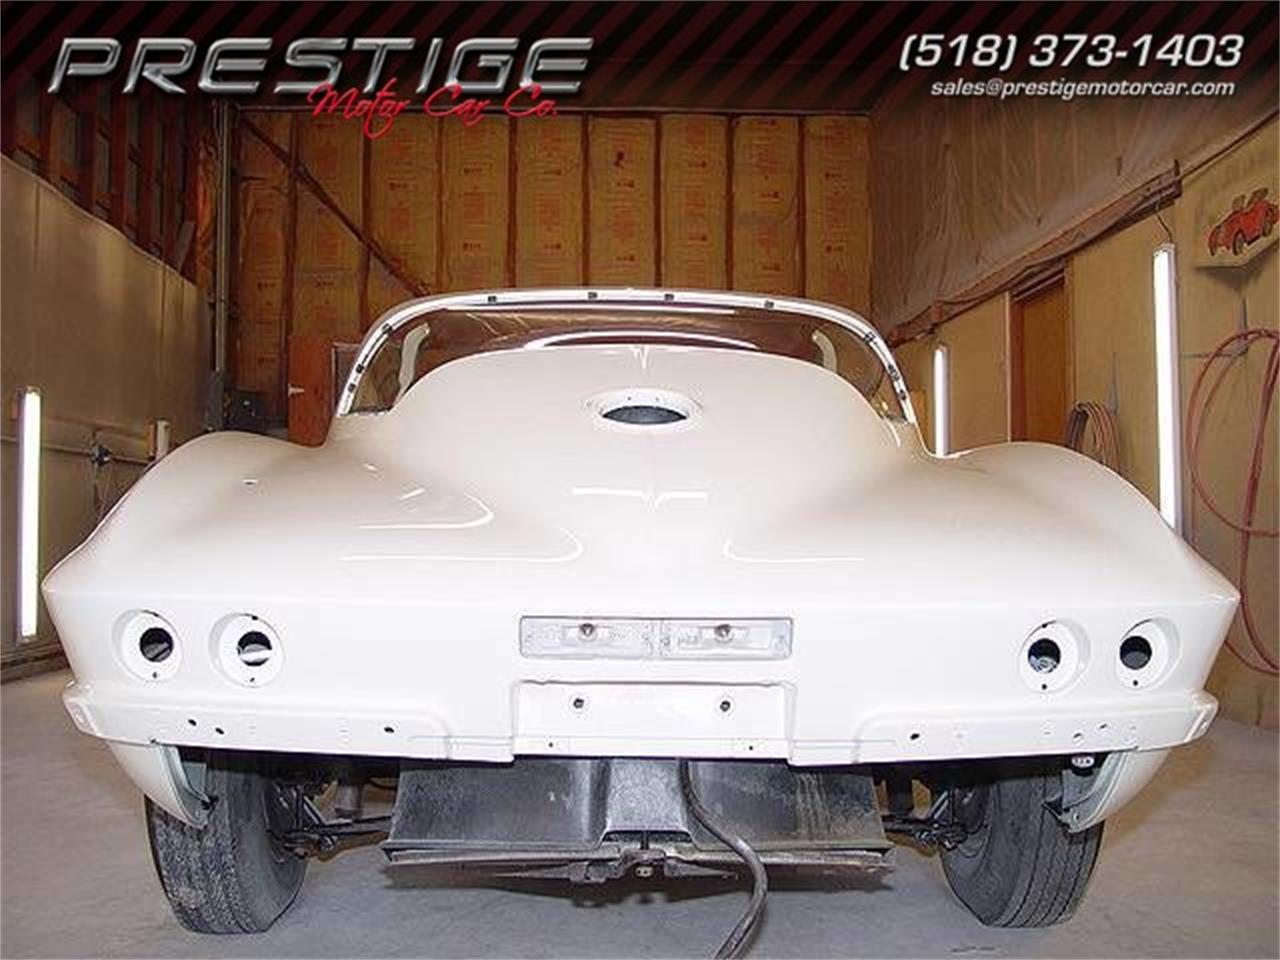 1967 chevrolet corvette for sale cc 914956 for Prestige motors clifton park